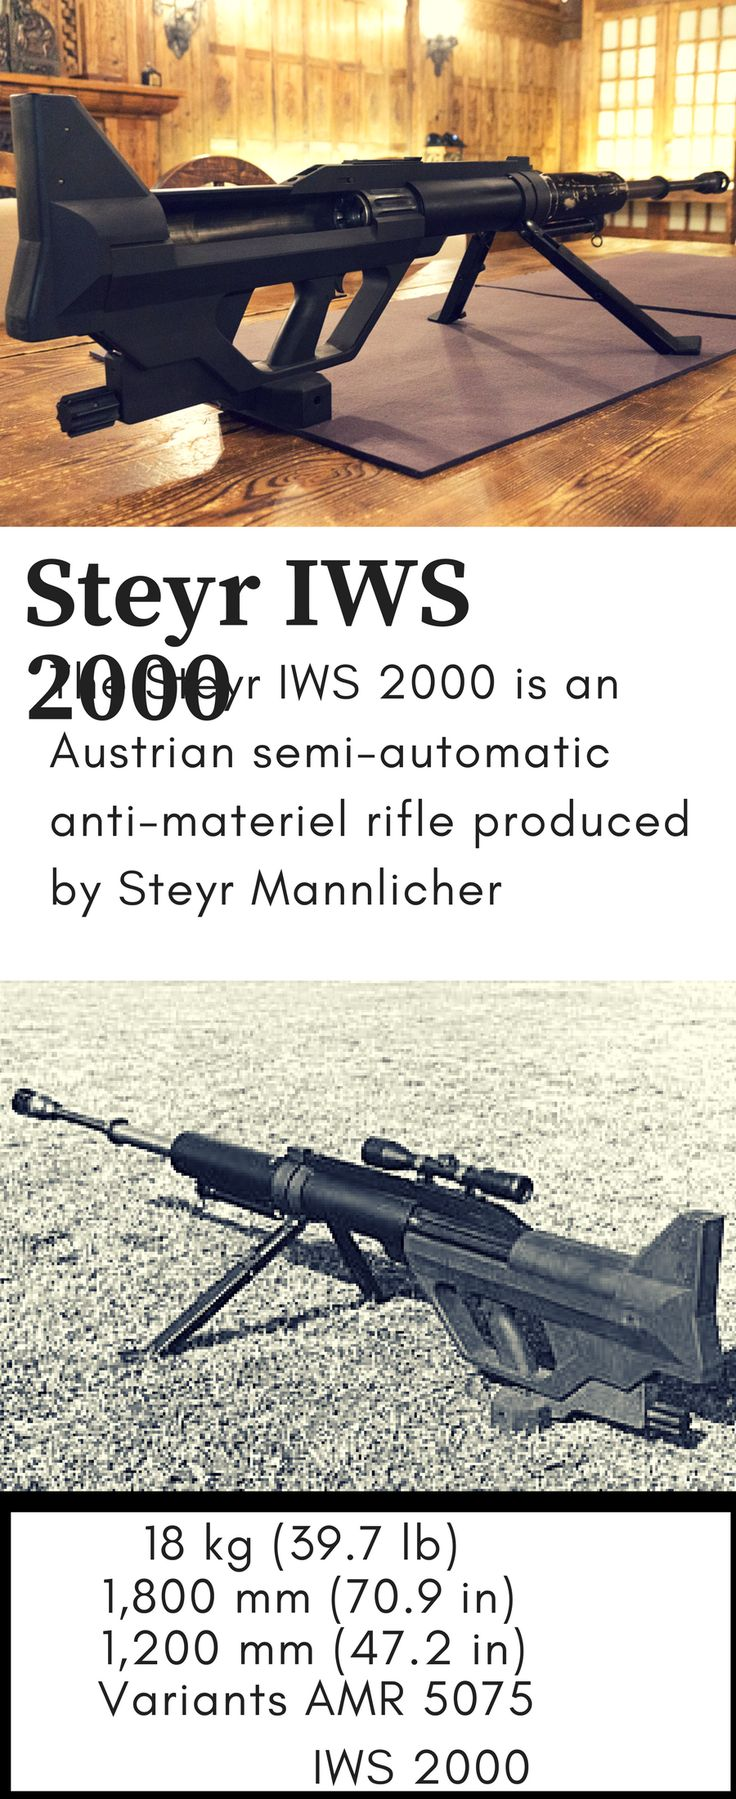 Steyr IWS 2000 The Steyr IWS 2000 is an Austrian semi-automatic anti-materiel rifle produced by Steyr Mannlicher. IWS stands for Infantry Weapon System. Like many modern anti-tank rifles, it is actually a smoothbore weapon and not a true rifle but this can help accelerate projectiles and increase ballistic effectiveness.